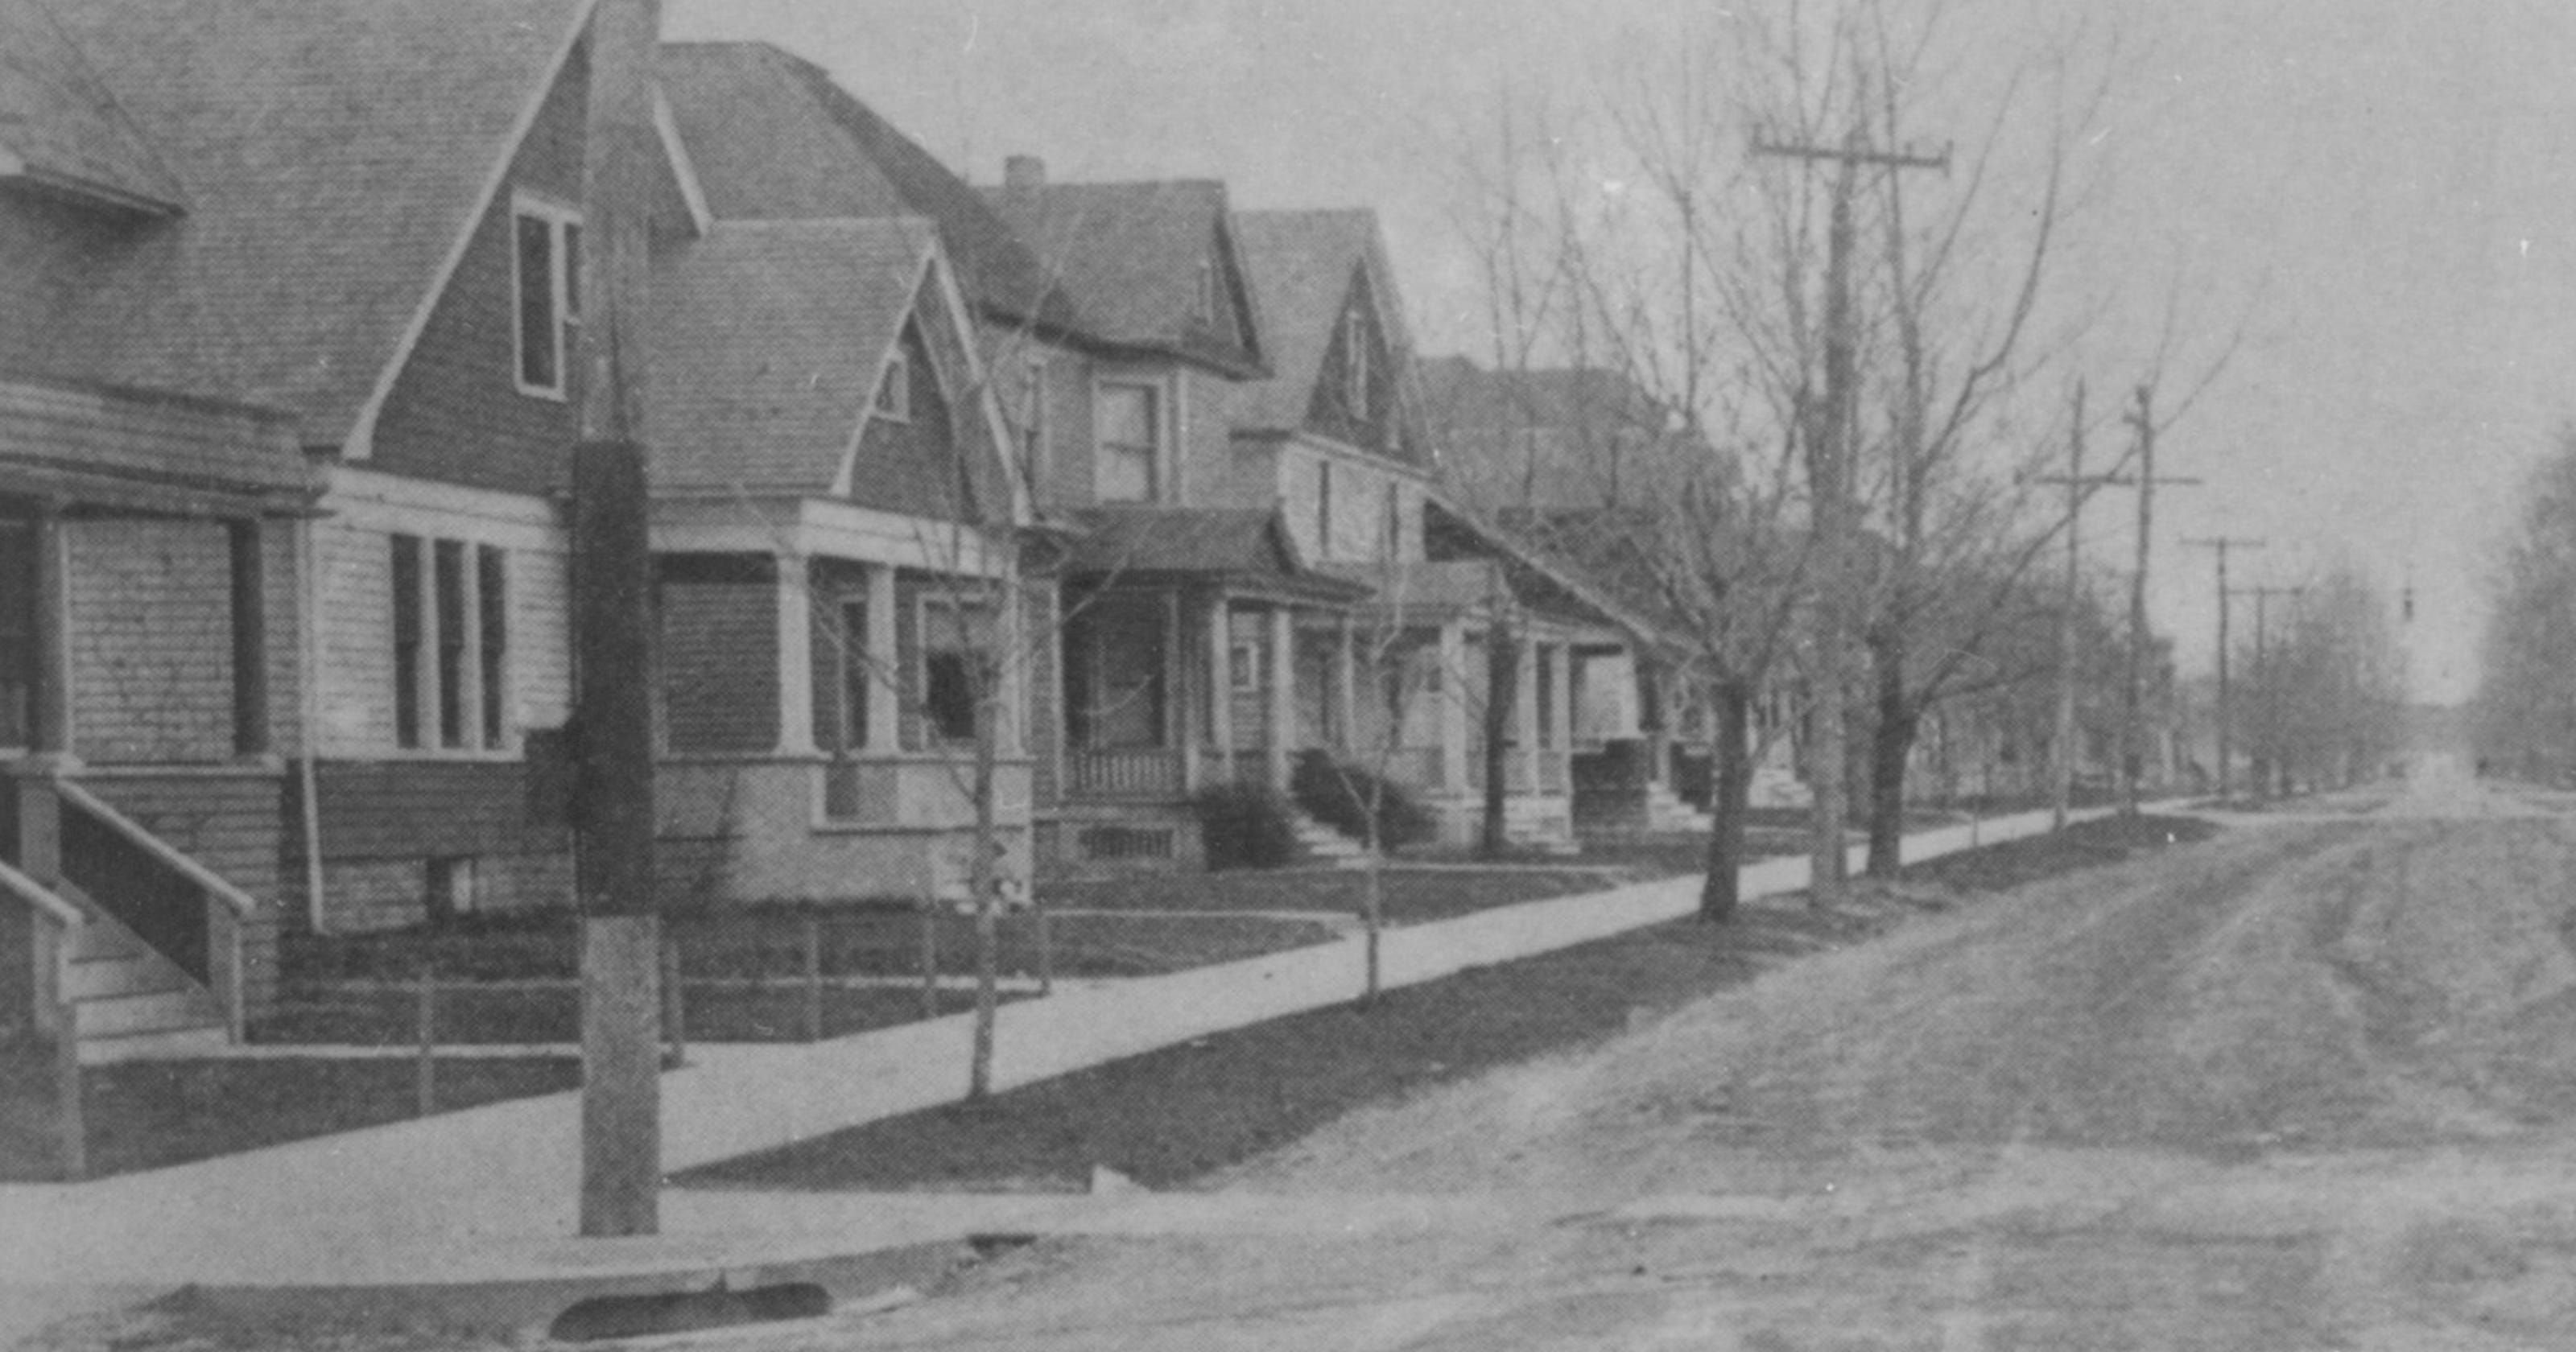 Among various styles, some houses were just EJ homes on 1890 ranch homes, 1890 folk victorian homes, 1890 american homes, 1890 colonial revival homes,